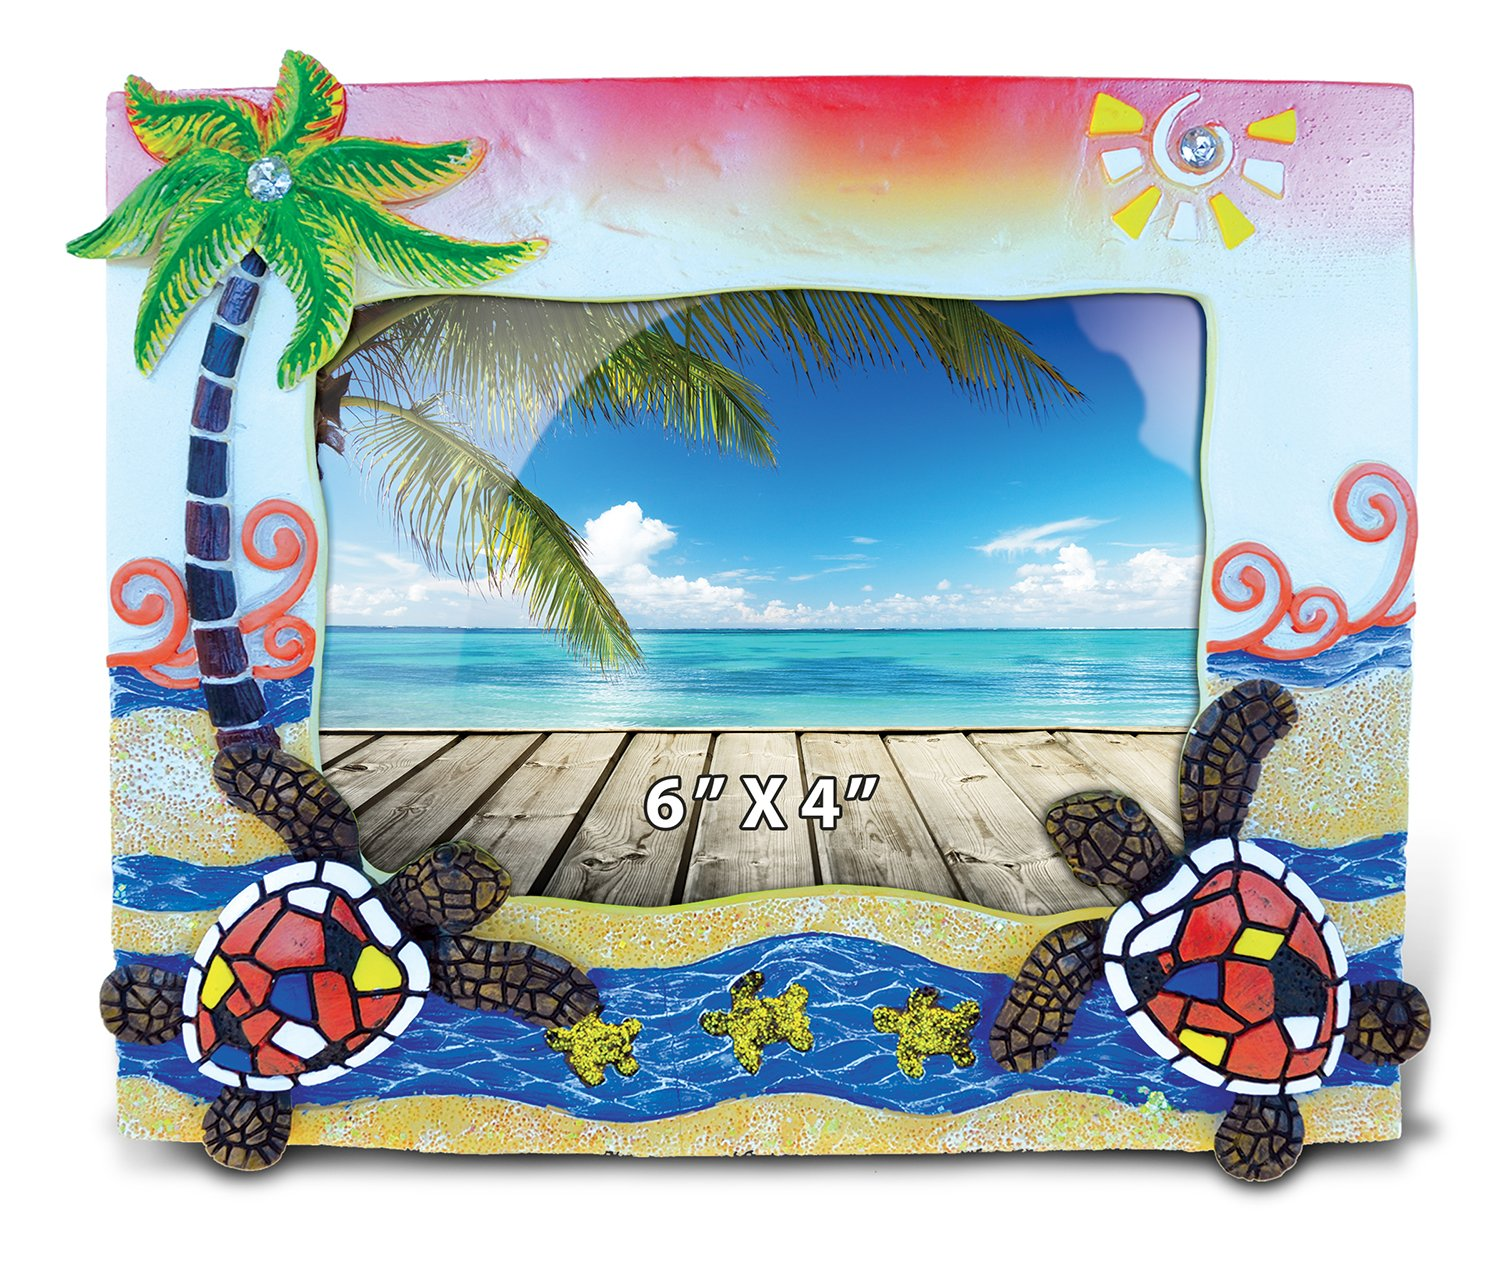 Puzzled Resin Sea Turtle Mosaic Picture Frame, 6 X 4 Inch Sculptural Photo Holder Intricate & Meticulous Detailing Art Handcrafted Tabletop Accent Accessory Tropical Beach Themed Home Décor by Puzzled